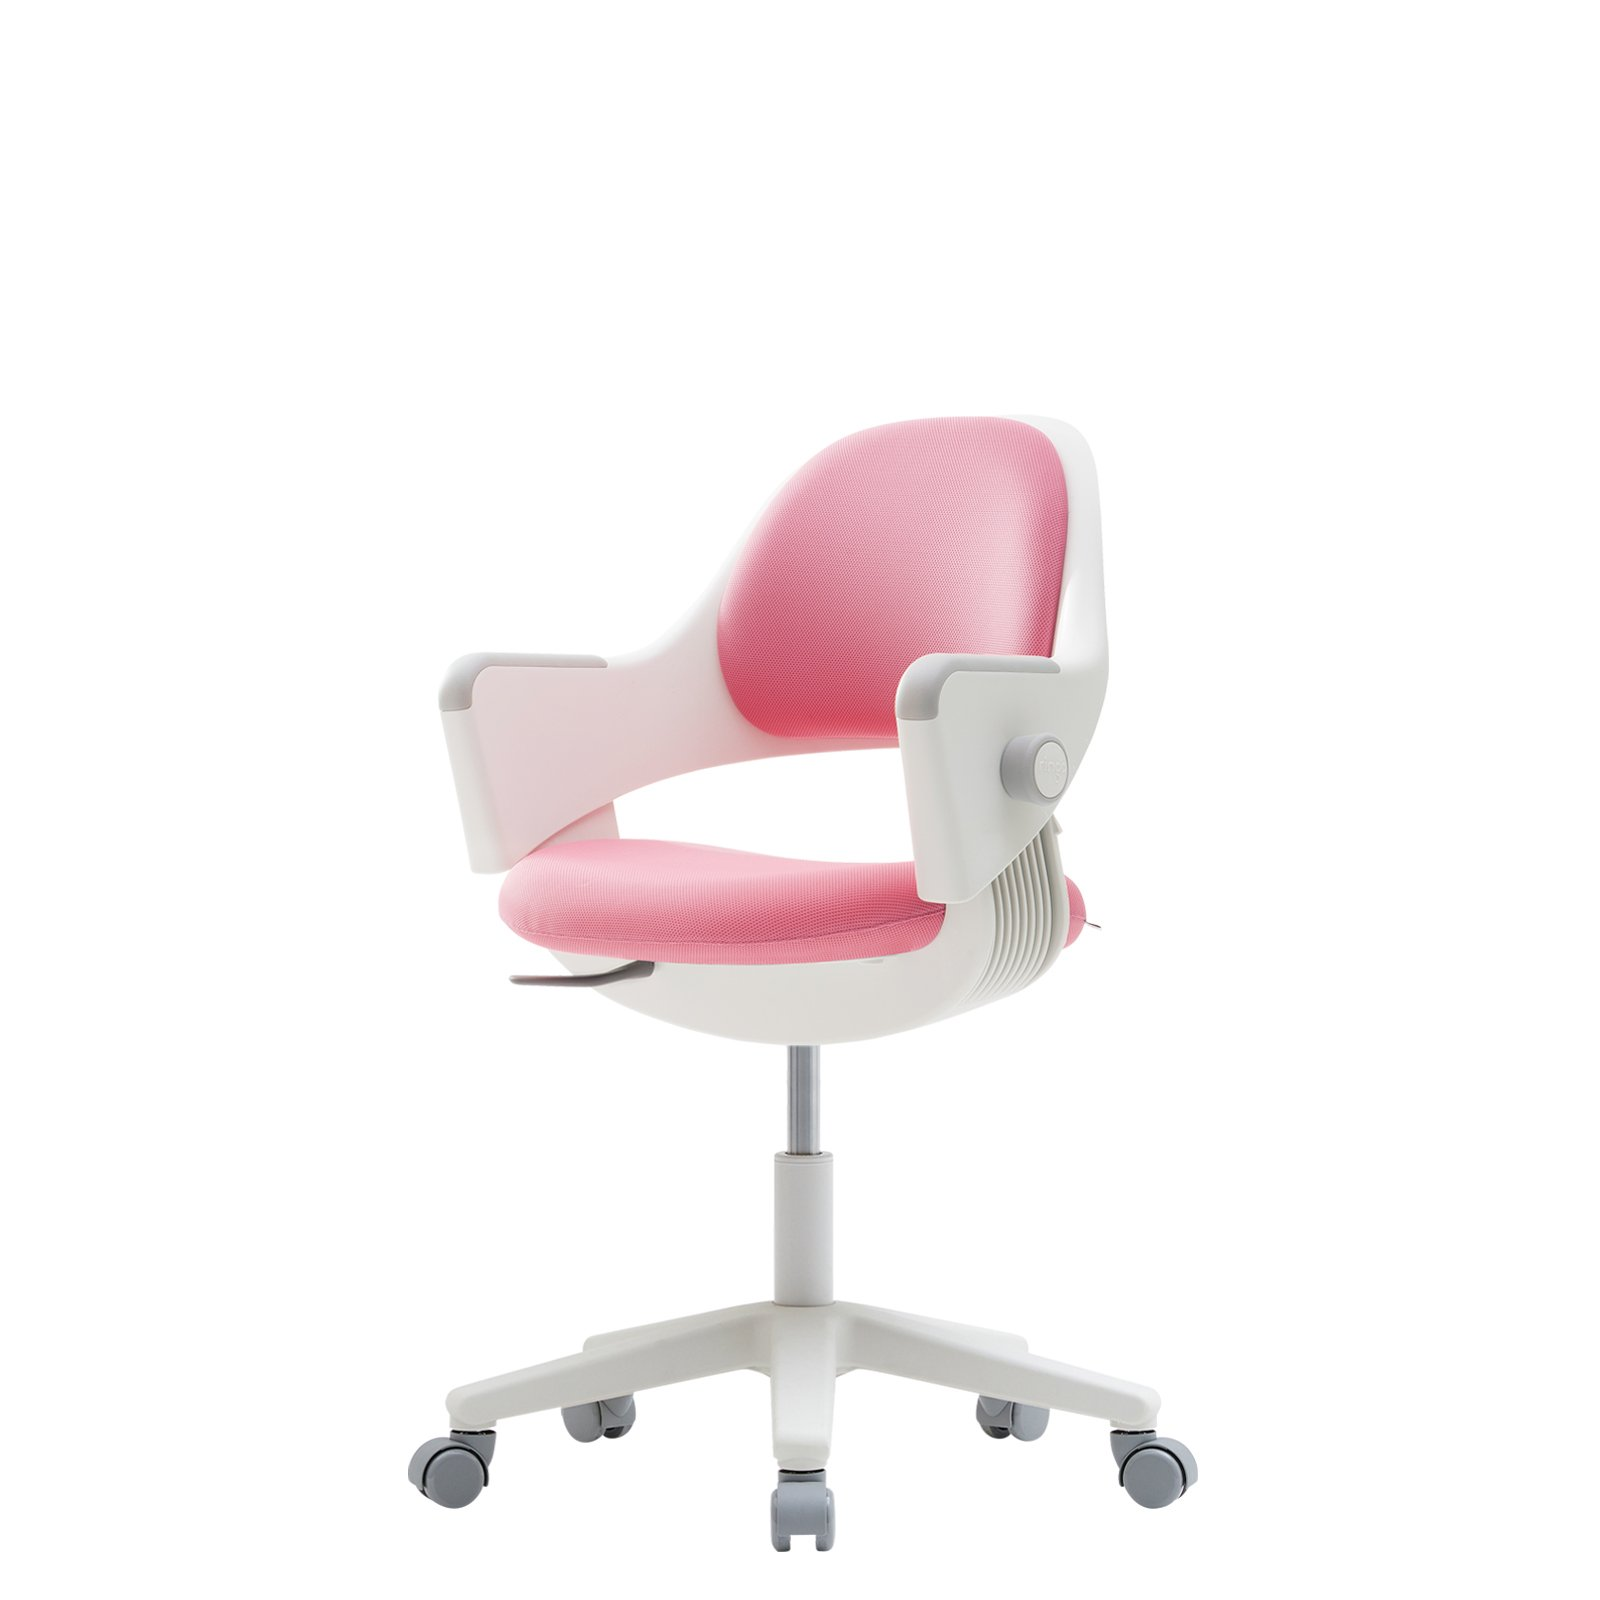 sidiz NEW Ringo Kids Desk Chair Growing Adjustable [Fixed type] (Fabric_Pink_F573L)